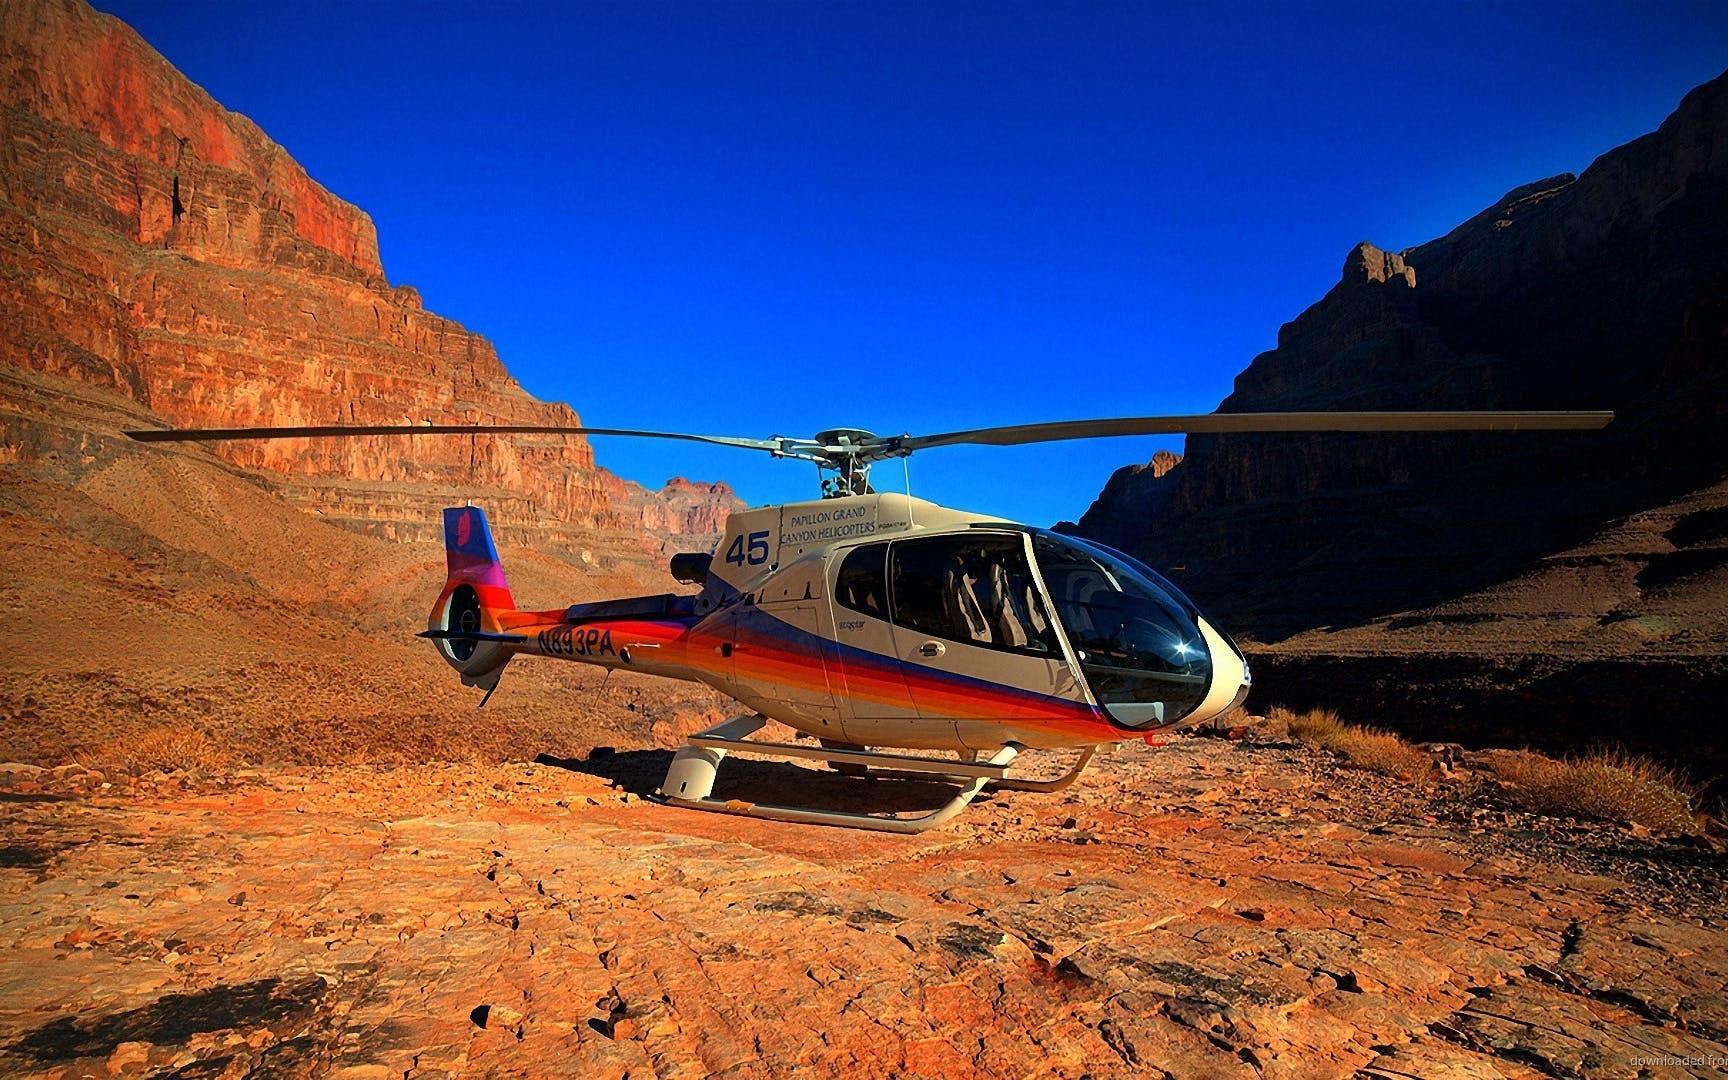 South Rim Helicopter Tour with Optional Jeep Excursion - 45 Minutes (Self Drive)